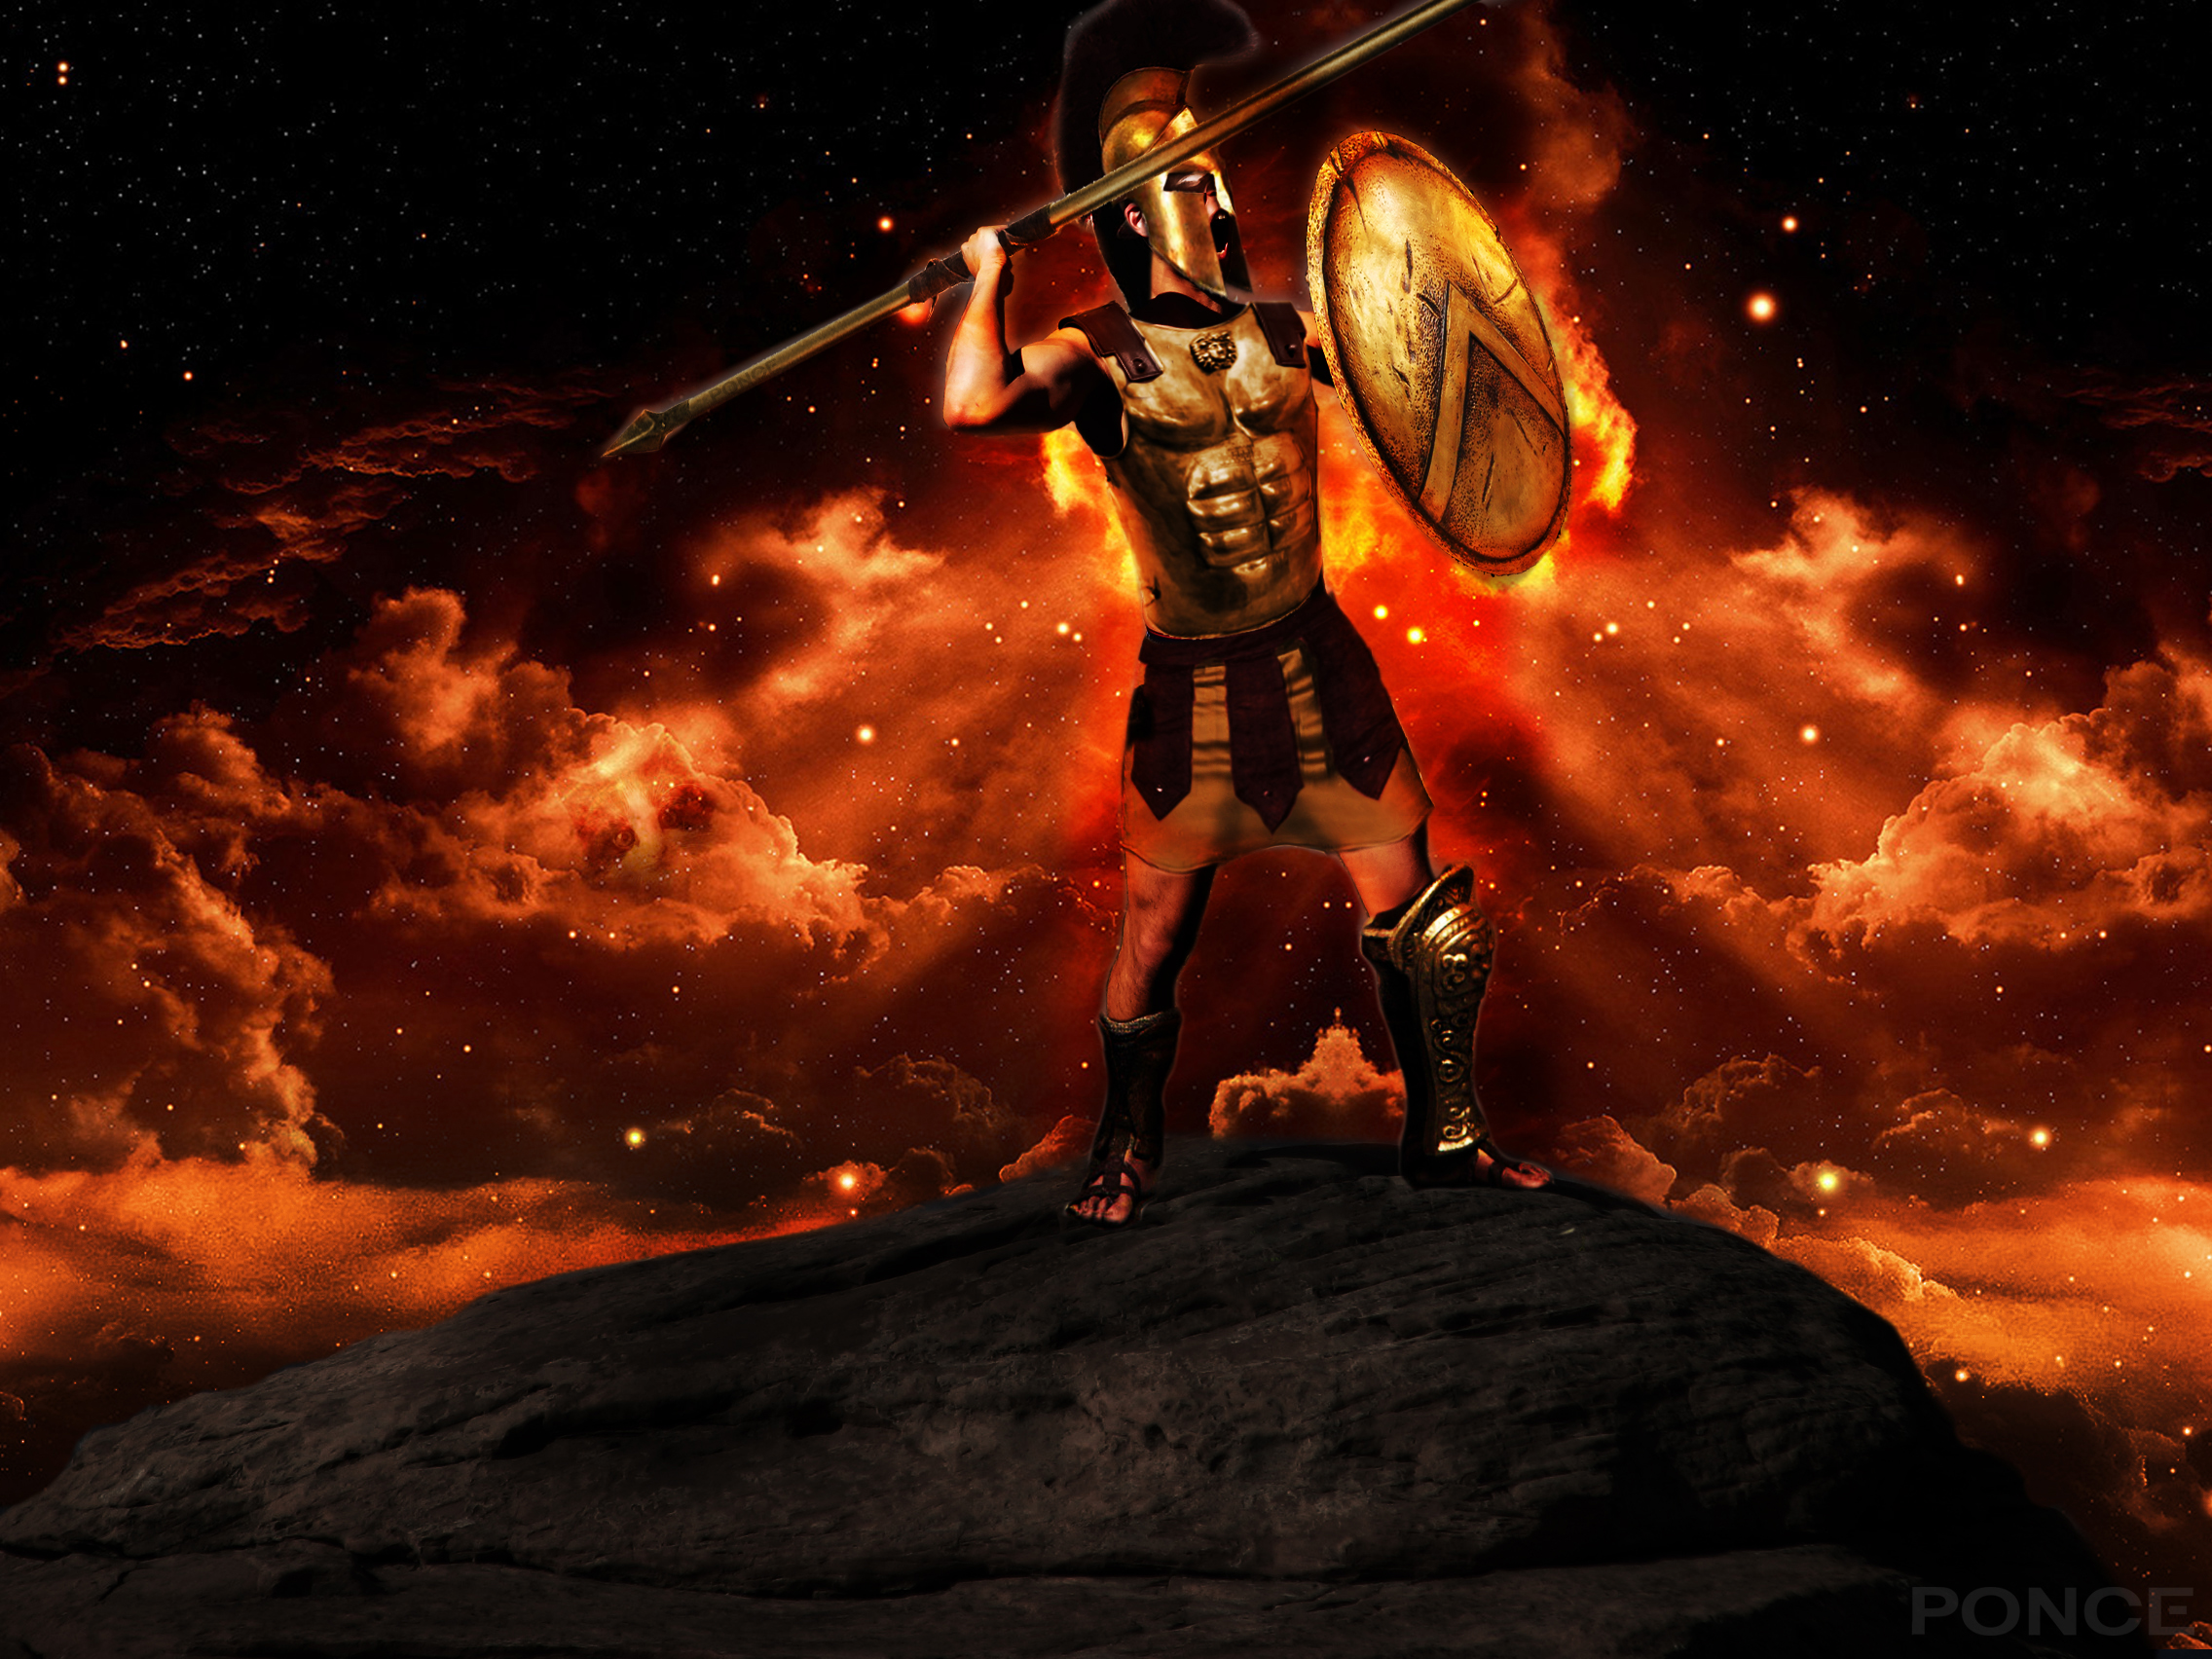 Ares the god of war by nahdawg on deviantart - Ares god of war wallpaper ...